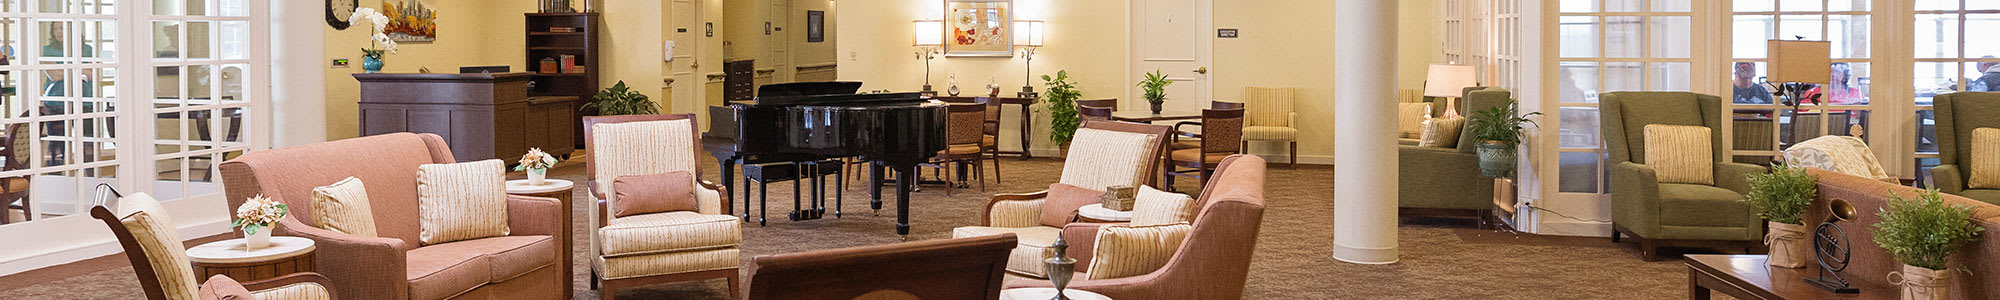 Dining menu at Broadmore Senior Living at Bristol